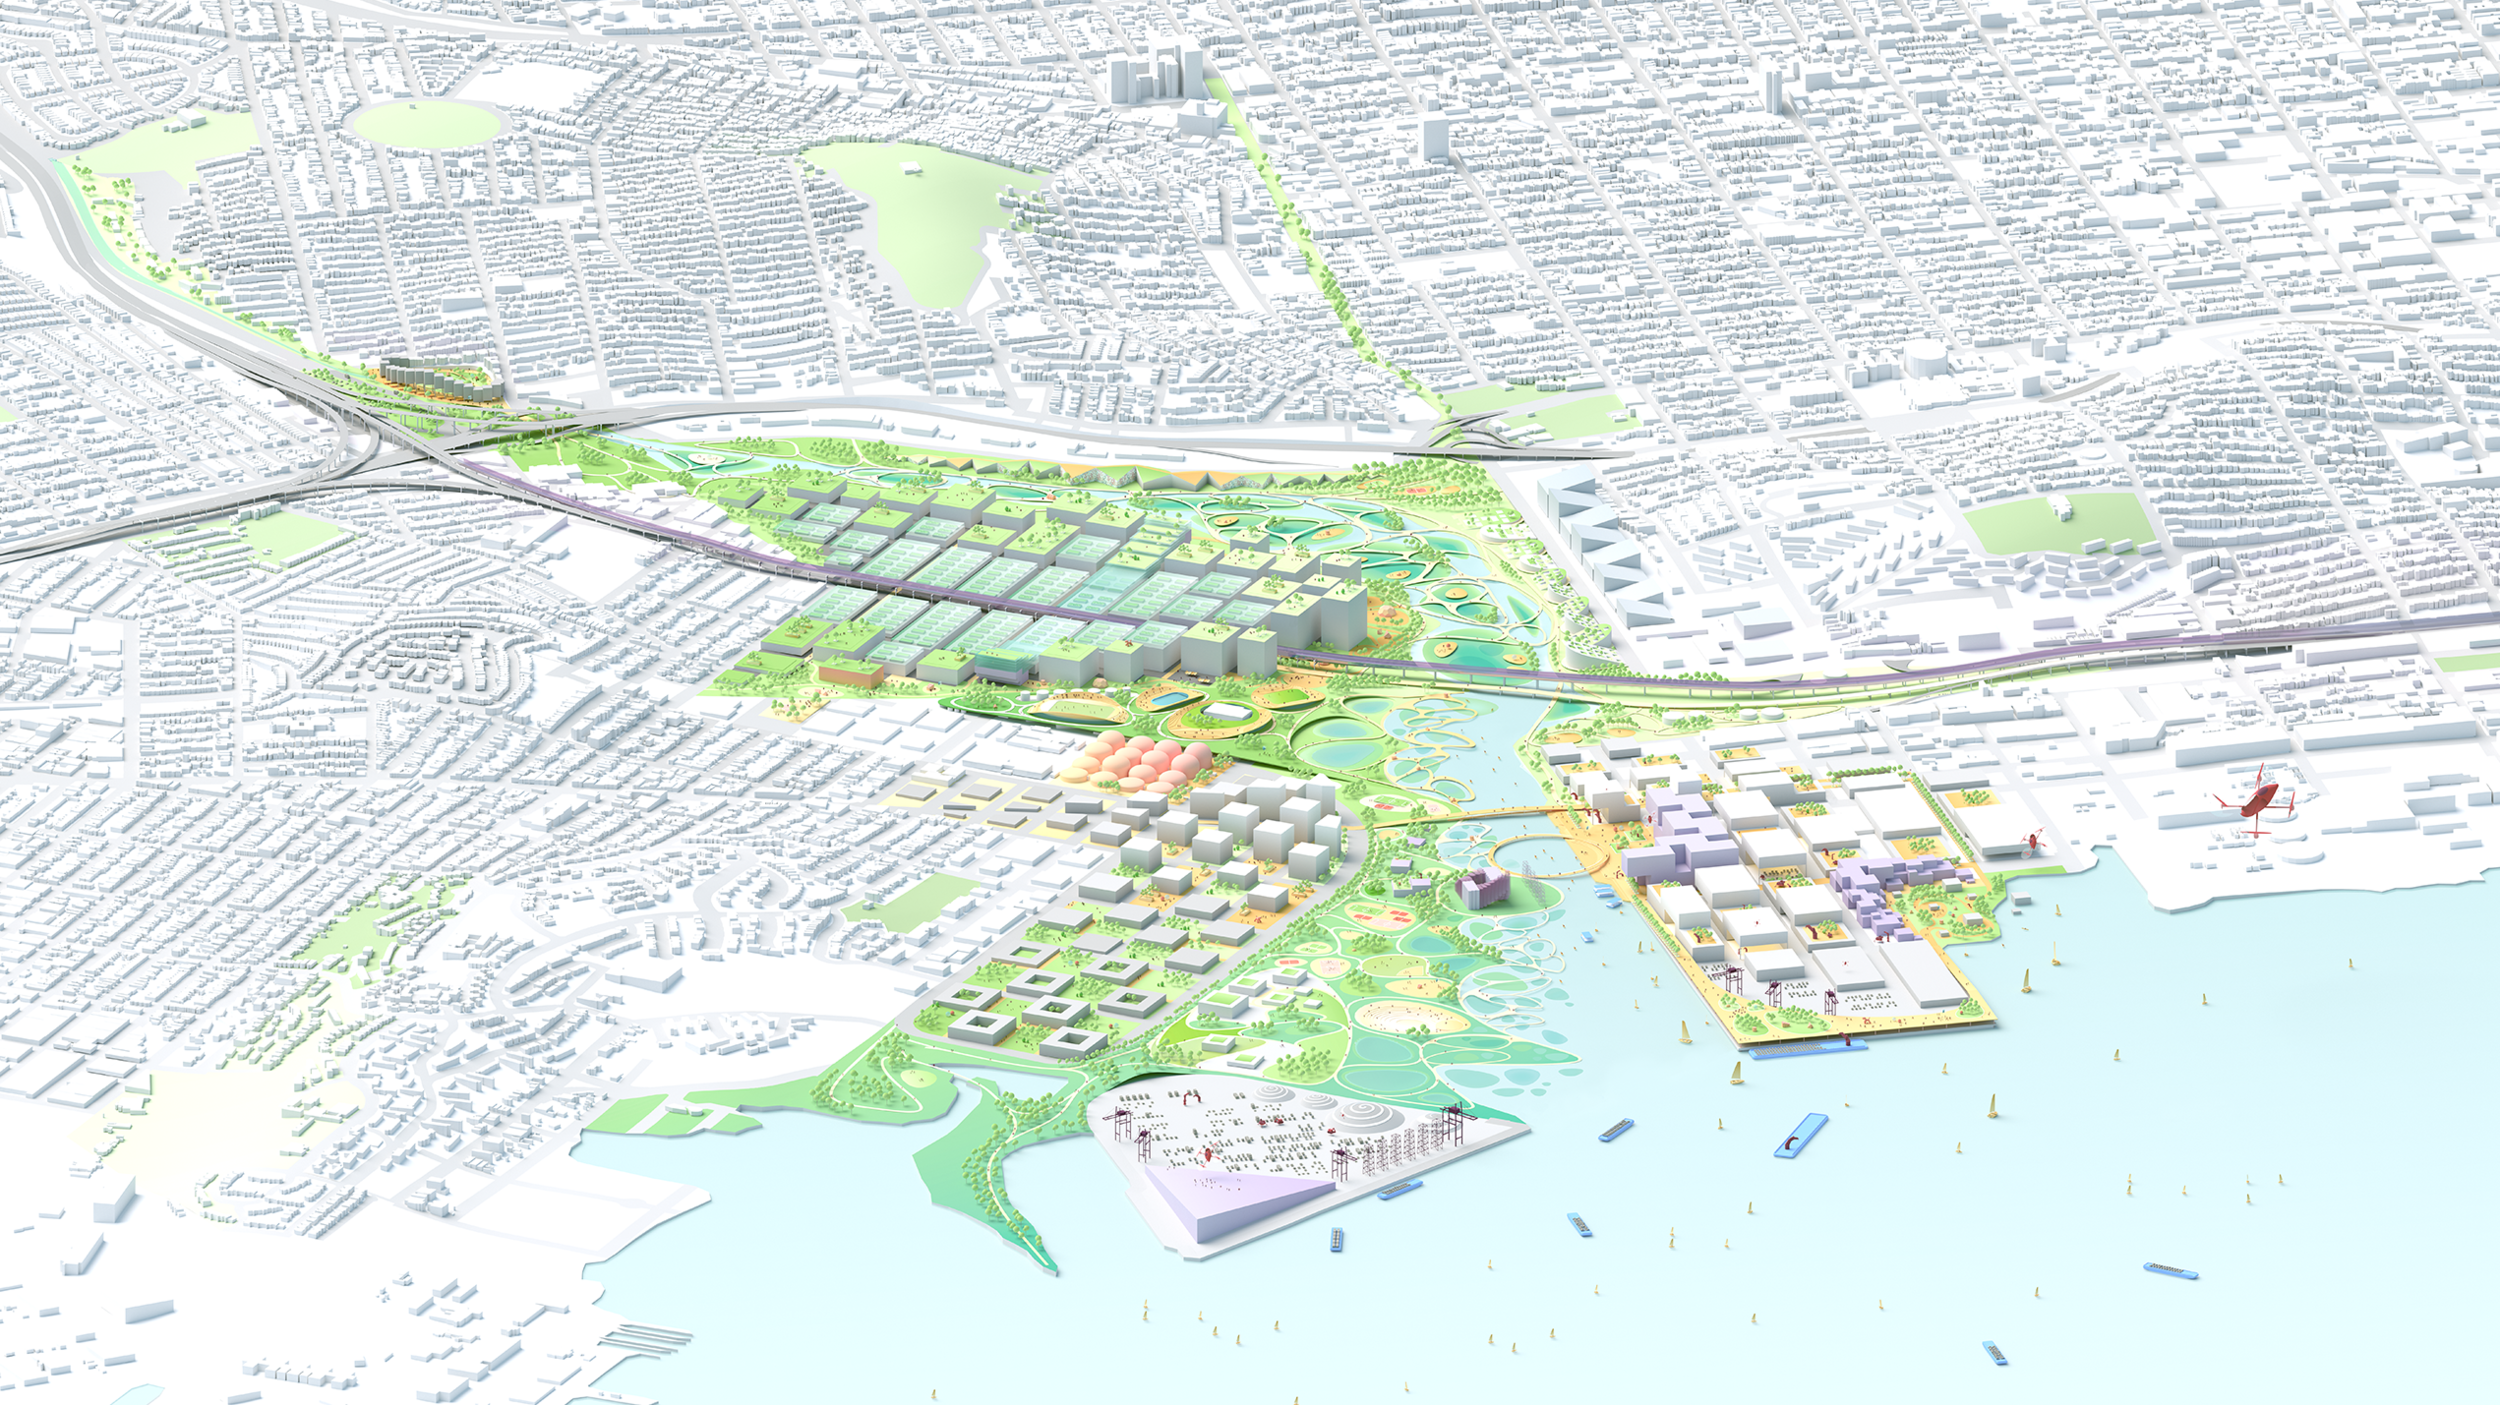 Weaving together natural, industrial, and social ecosystems, Islais Creek becomes dense, connective, and accessible: a resilience model for the entire Bay Area (Courtesy BIG + ONE + Sherwood).